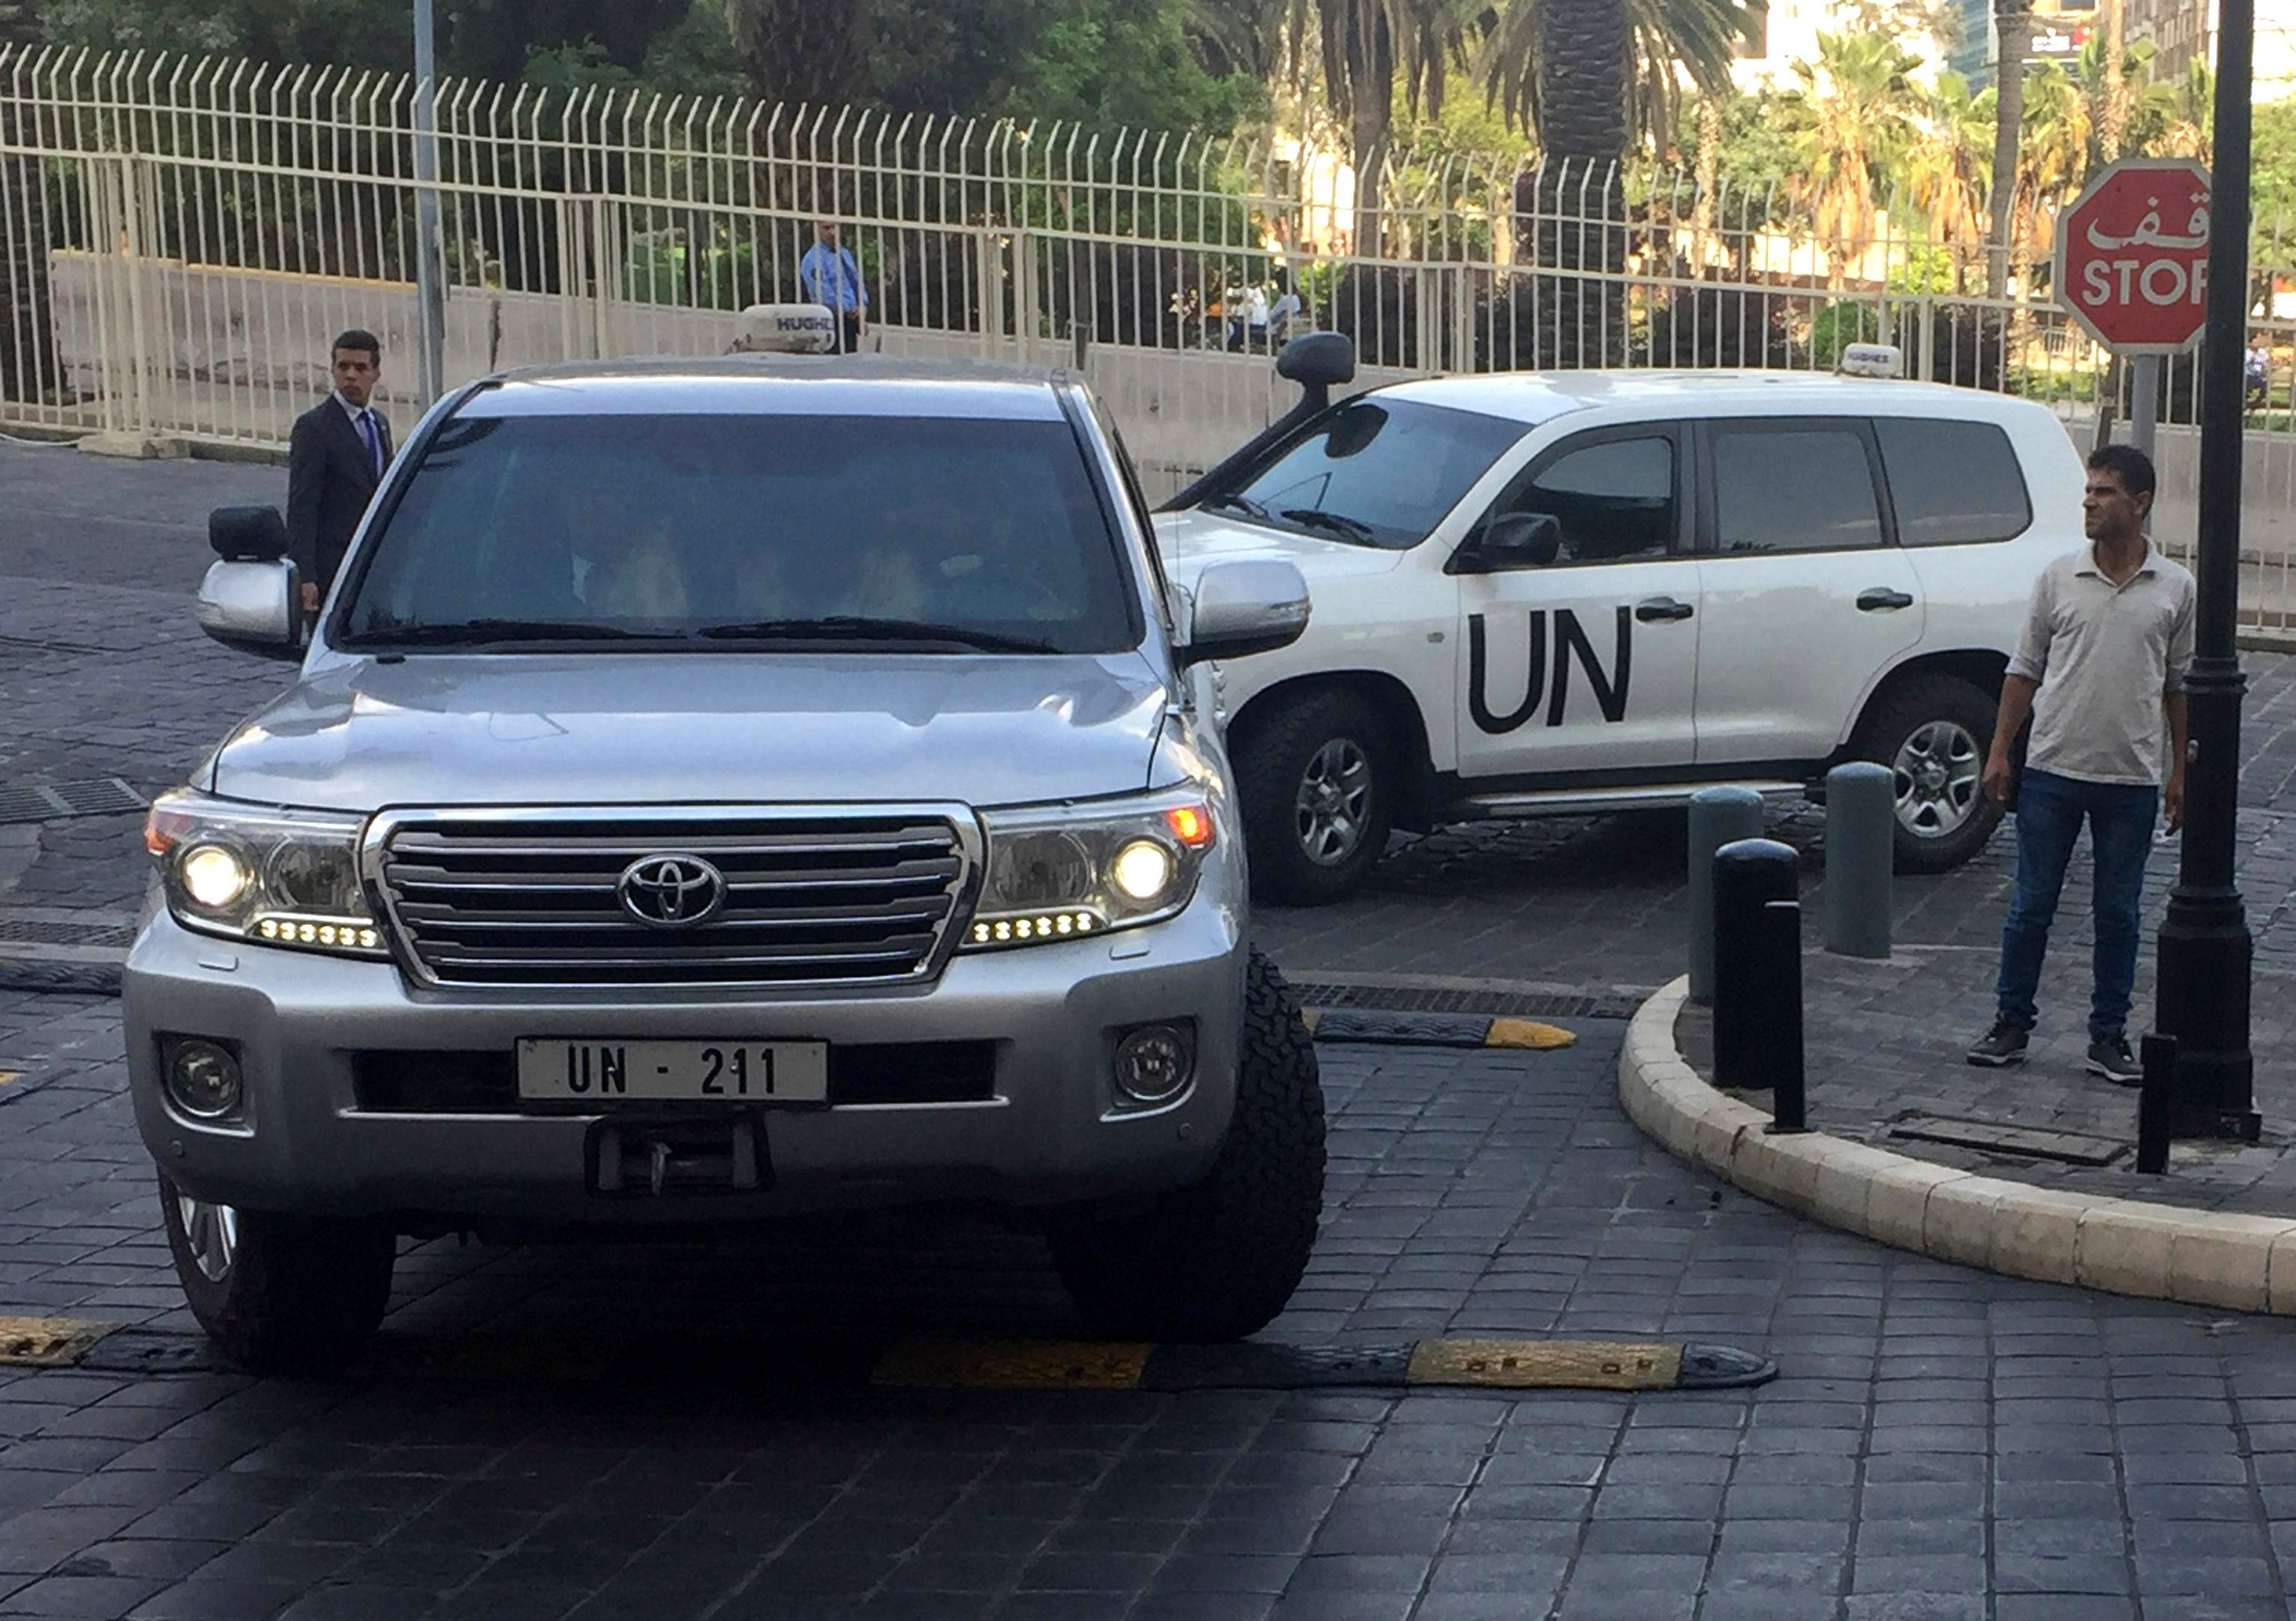 United Nations vehicles carry the team of the Organization for the Prohibition of Chemical Weapons (OPCW), arrive at hotel hours after the U.S., France and Britian launched an attack on Syrian facilities. (AP Photo/Bassem Mroue)